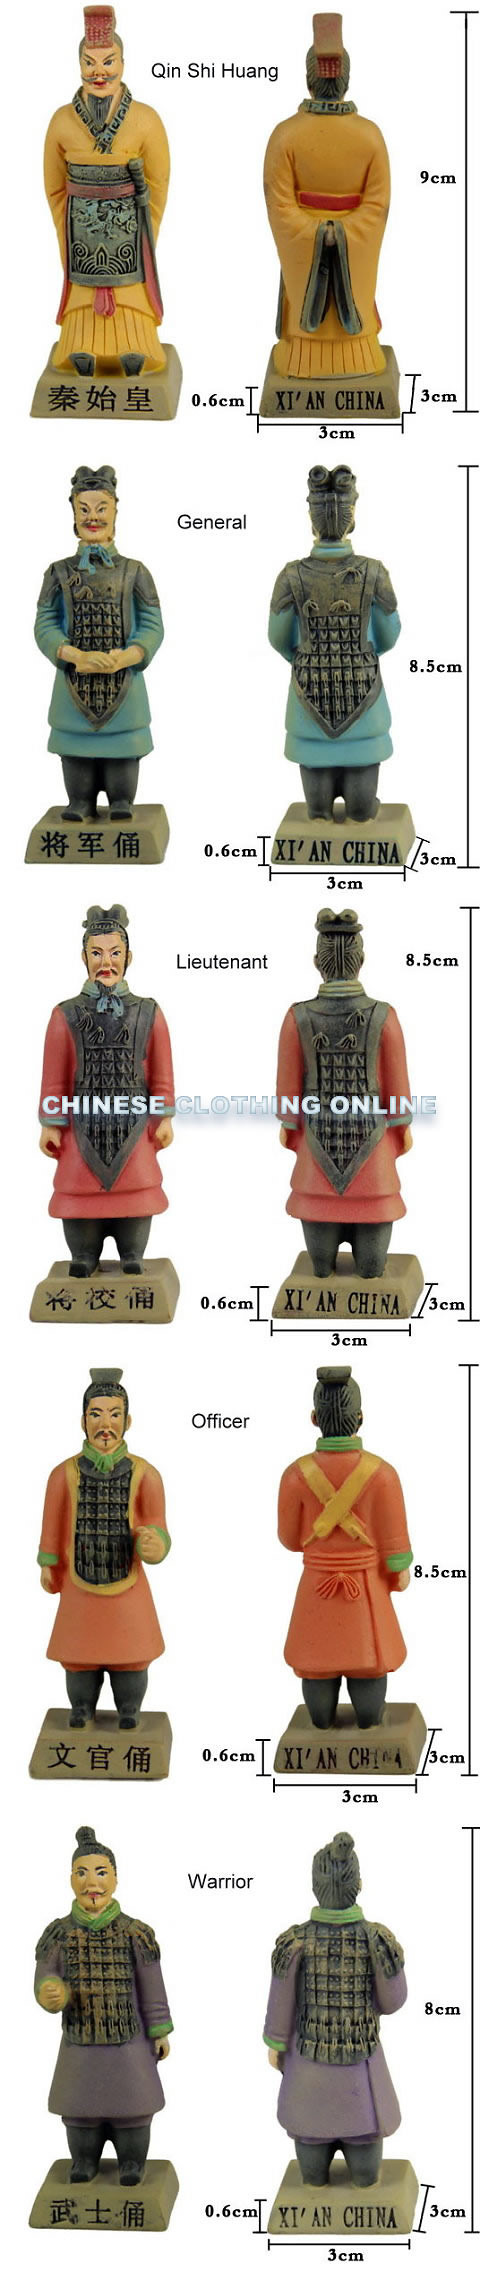 Colored 9-piece (8cm) Miniature Terracotta Army